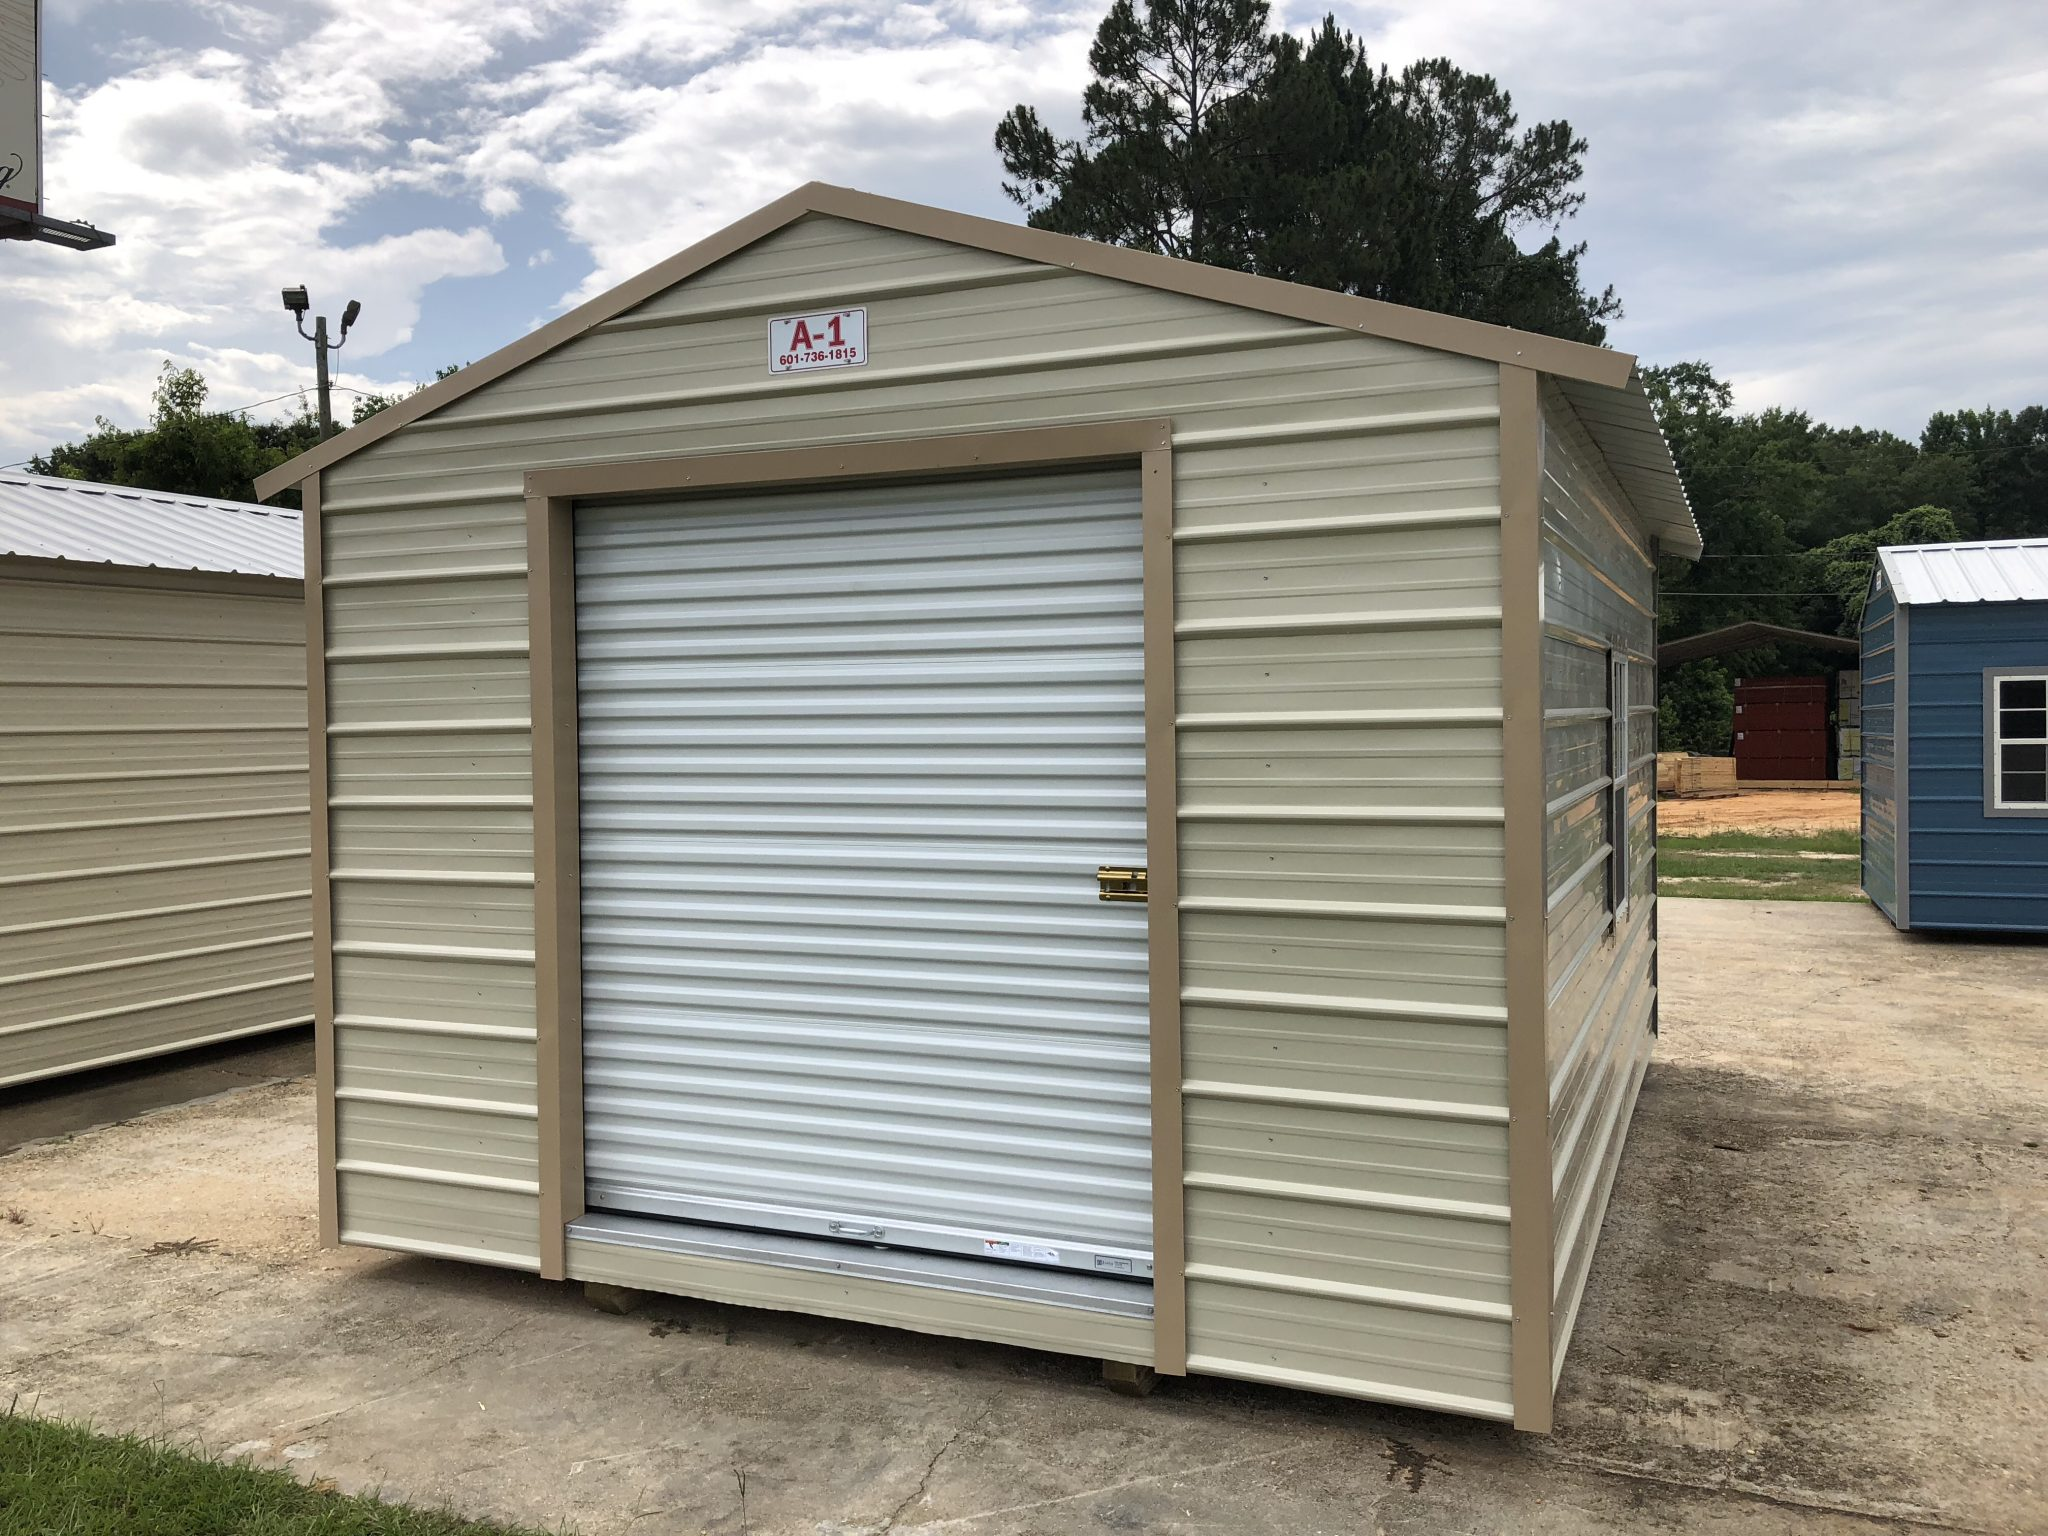 Garage Storage Buildings Sheds Portable Storage Buildings Hattiesburg Columbia Jackson